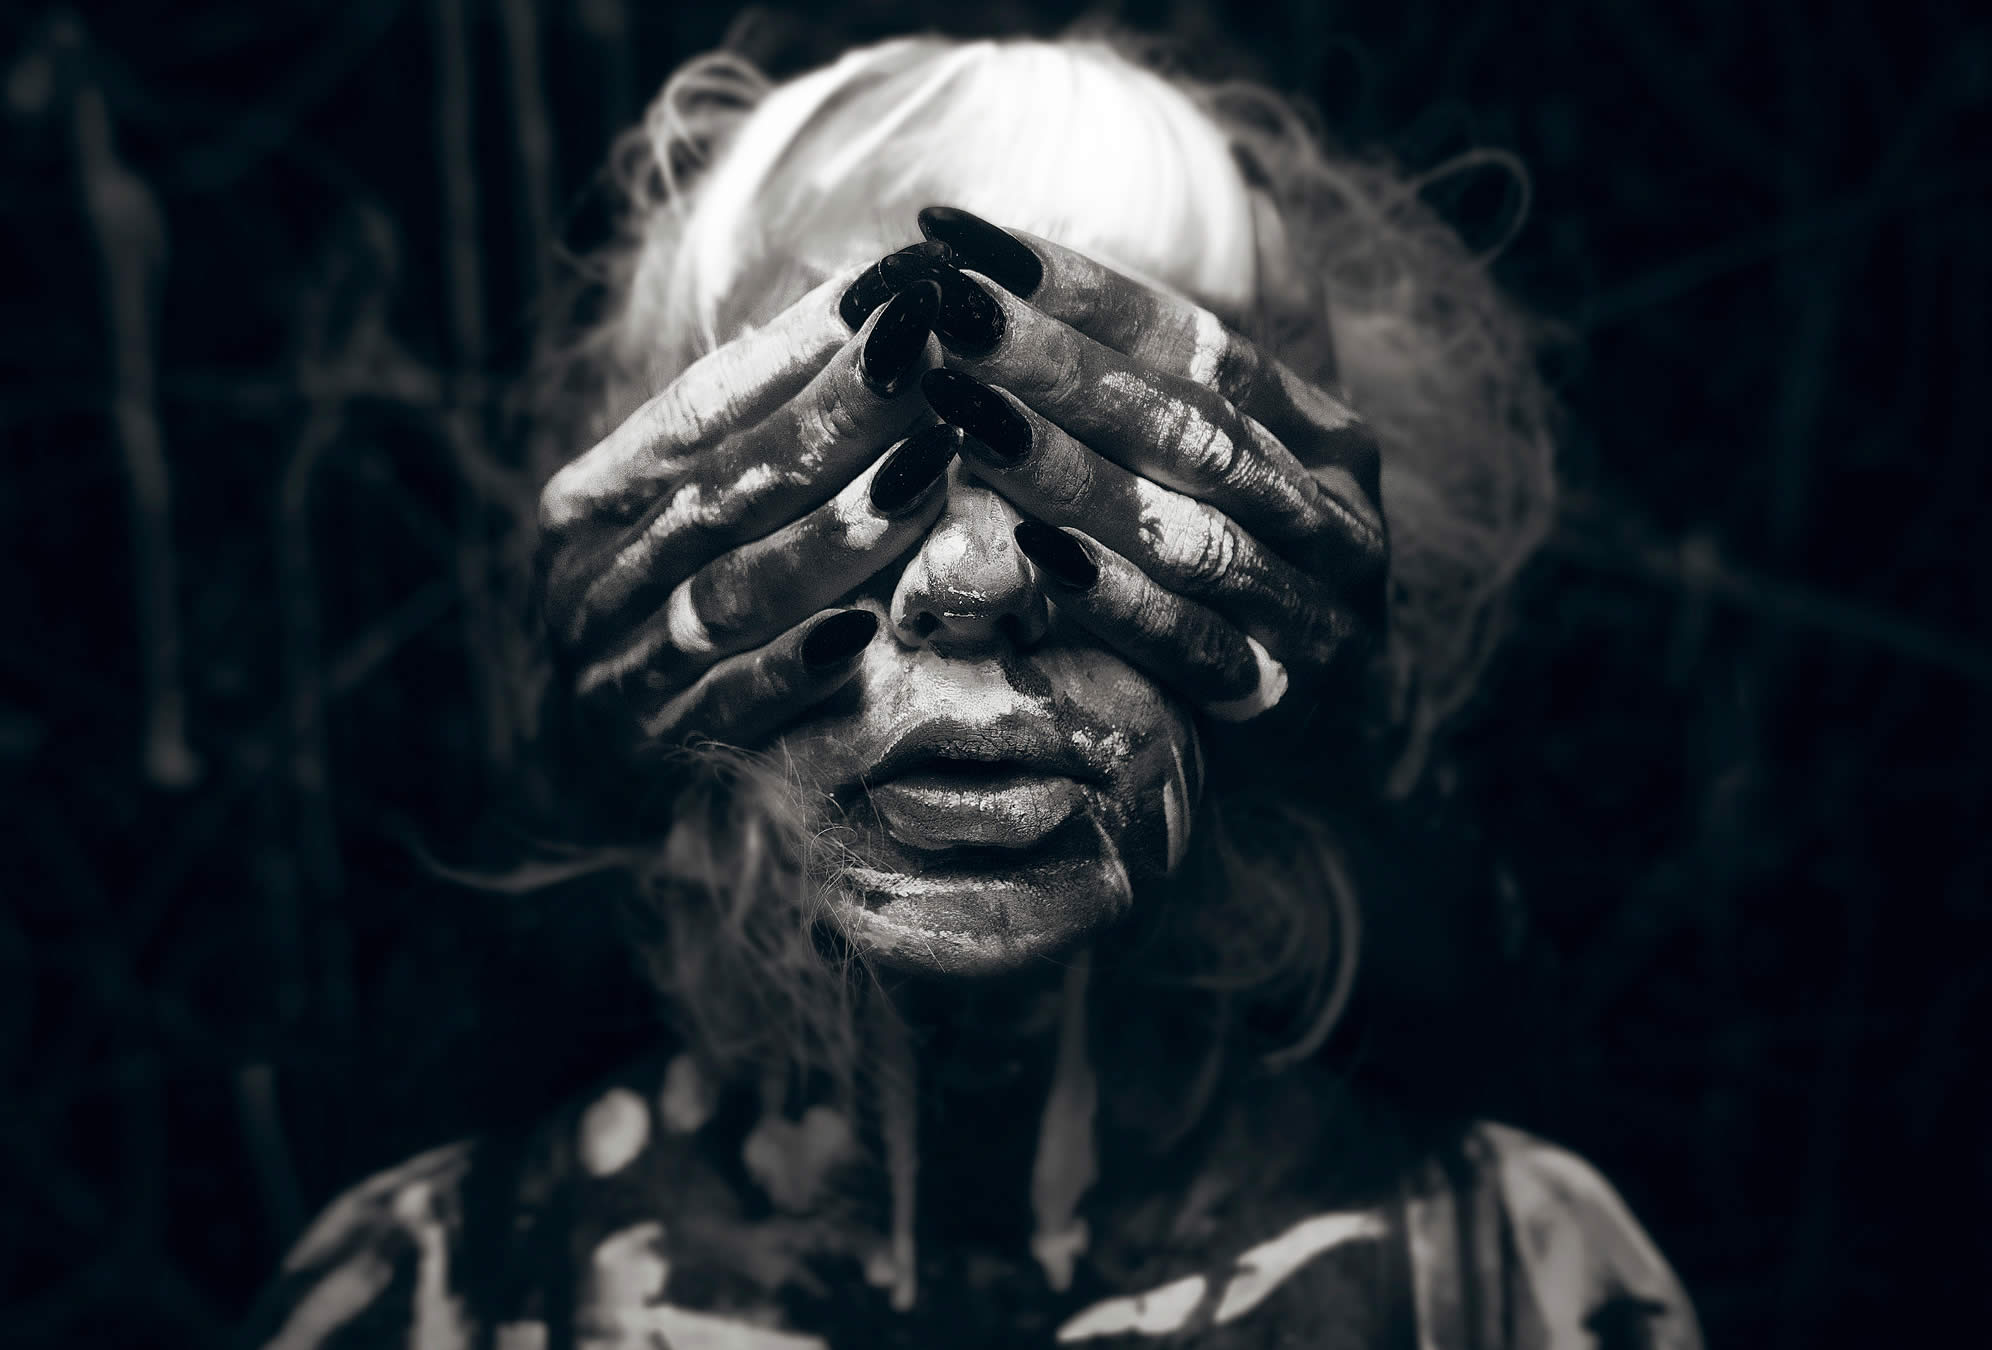 creepy lady with eyes covered, photo by kavan cardoza